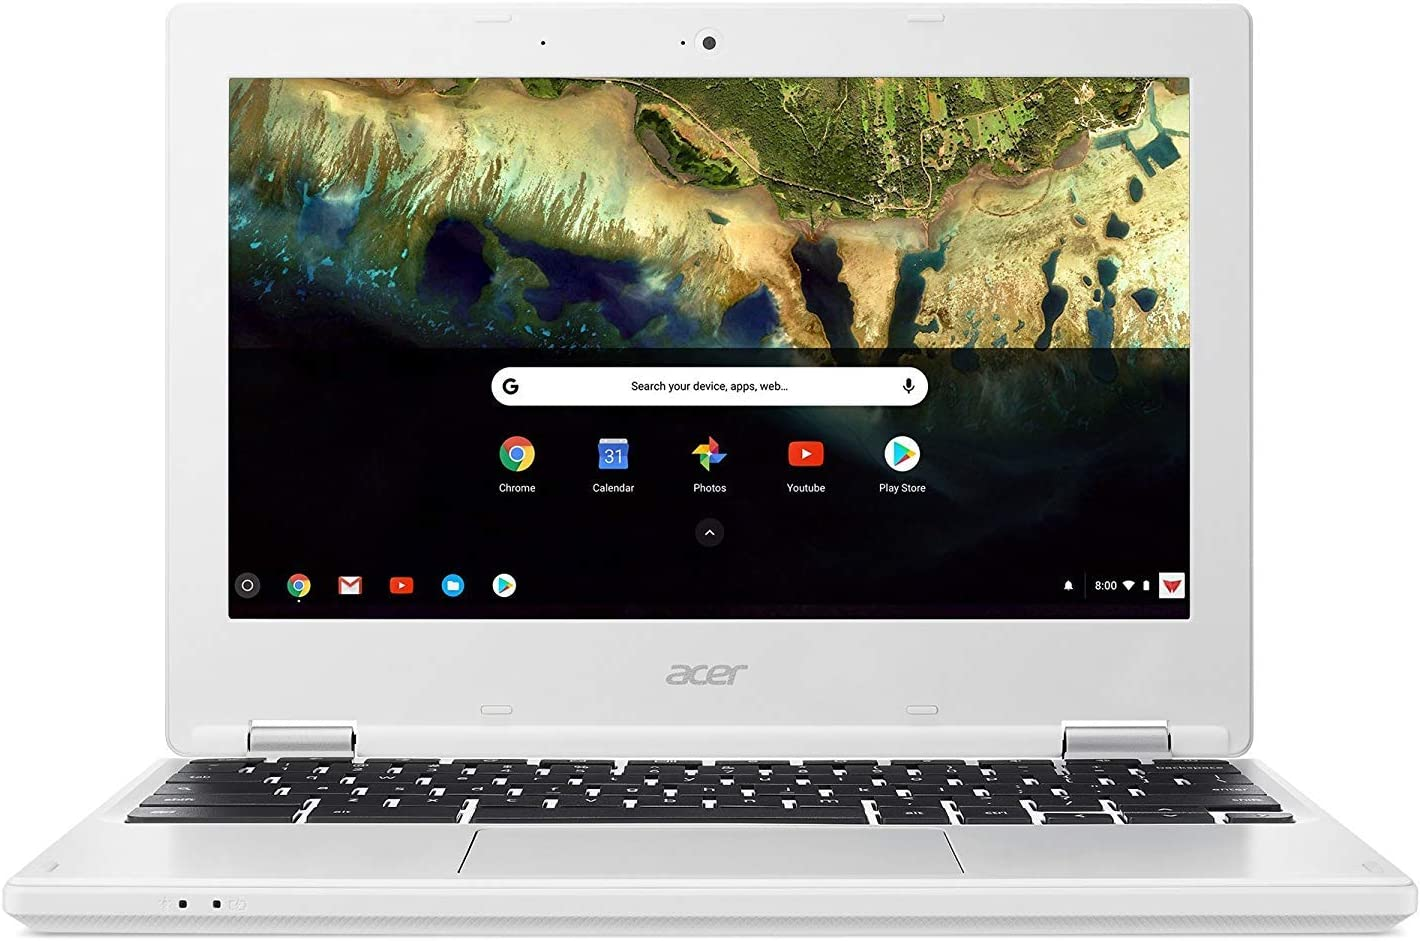 Newest Acer Chromebook 11.6-Inch HD IPS Display, Intel Celeron N3060 Dual-Core Processor, 2GB RAM,16GB SSD, WiFi, HDMI, Chrome OS (Renewed)